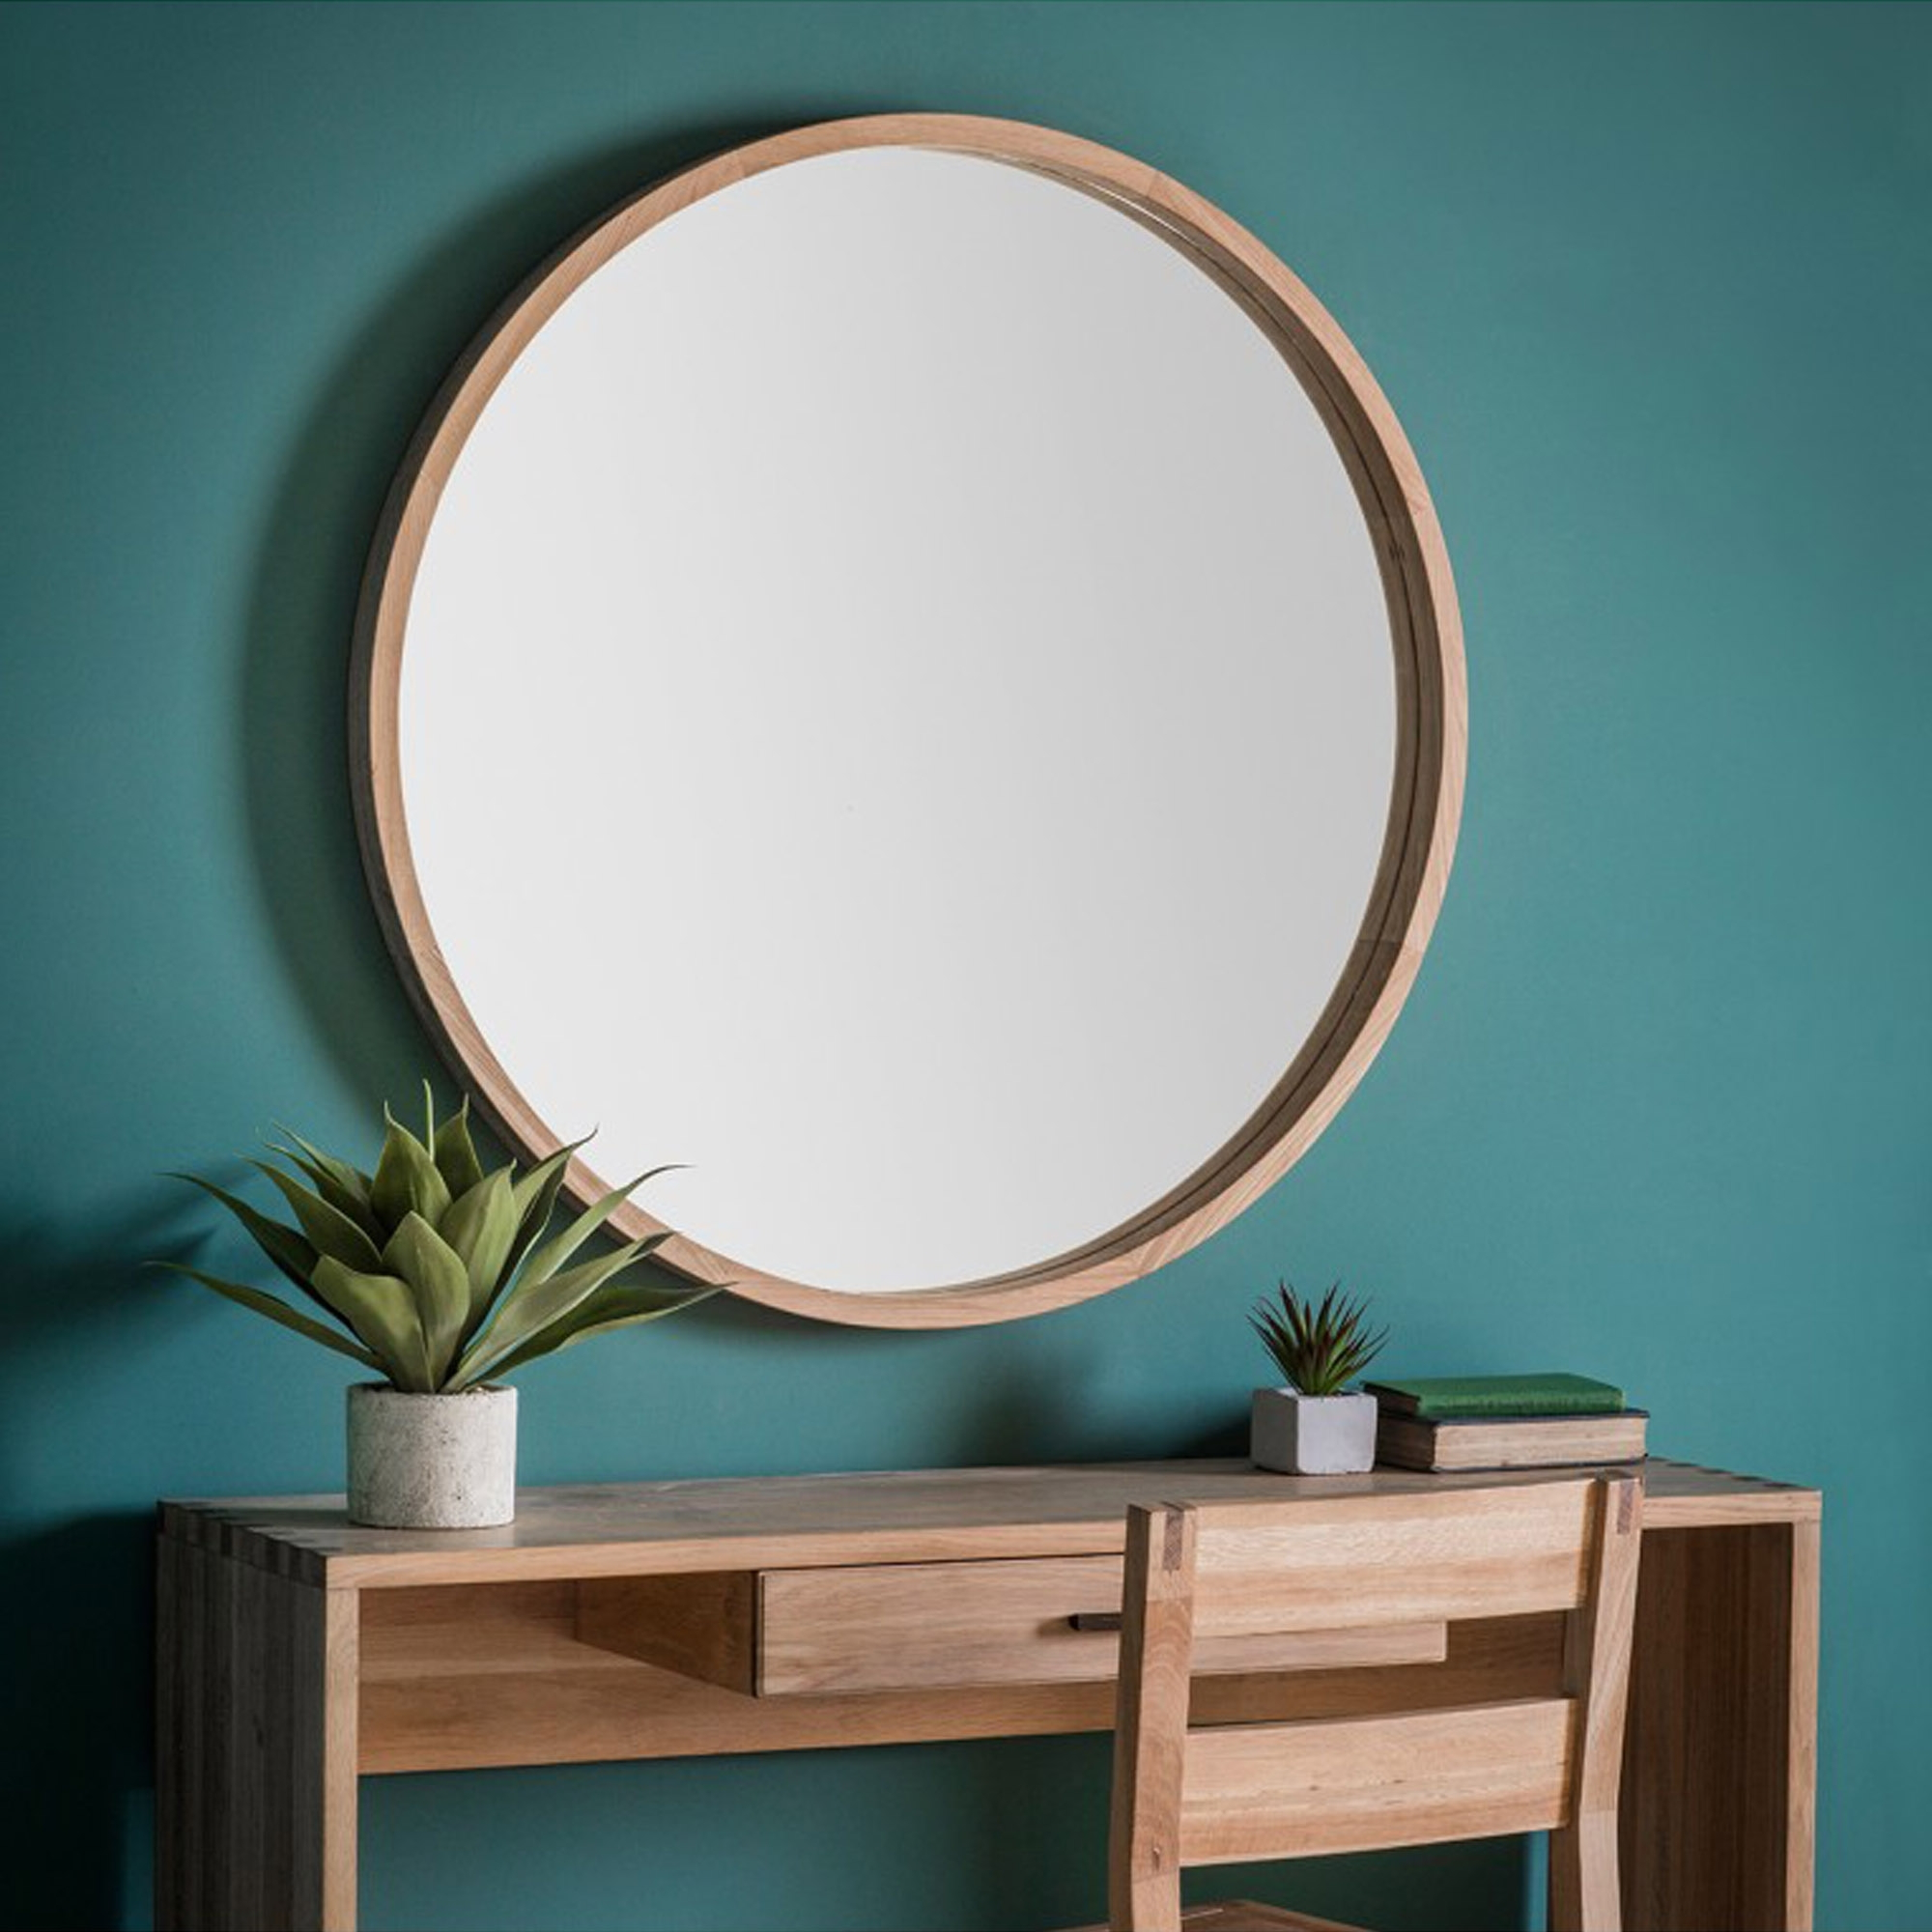 Newest Round Wood Wall Mirrors Within Bowman Large Round Wall Mirror (View 10 of 20)